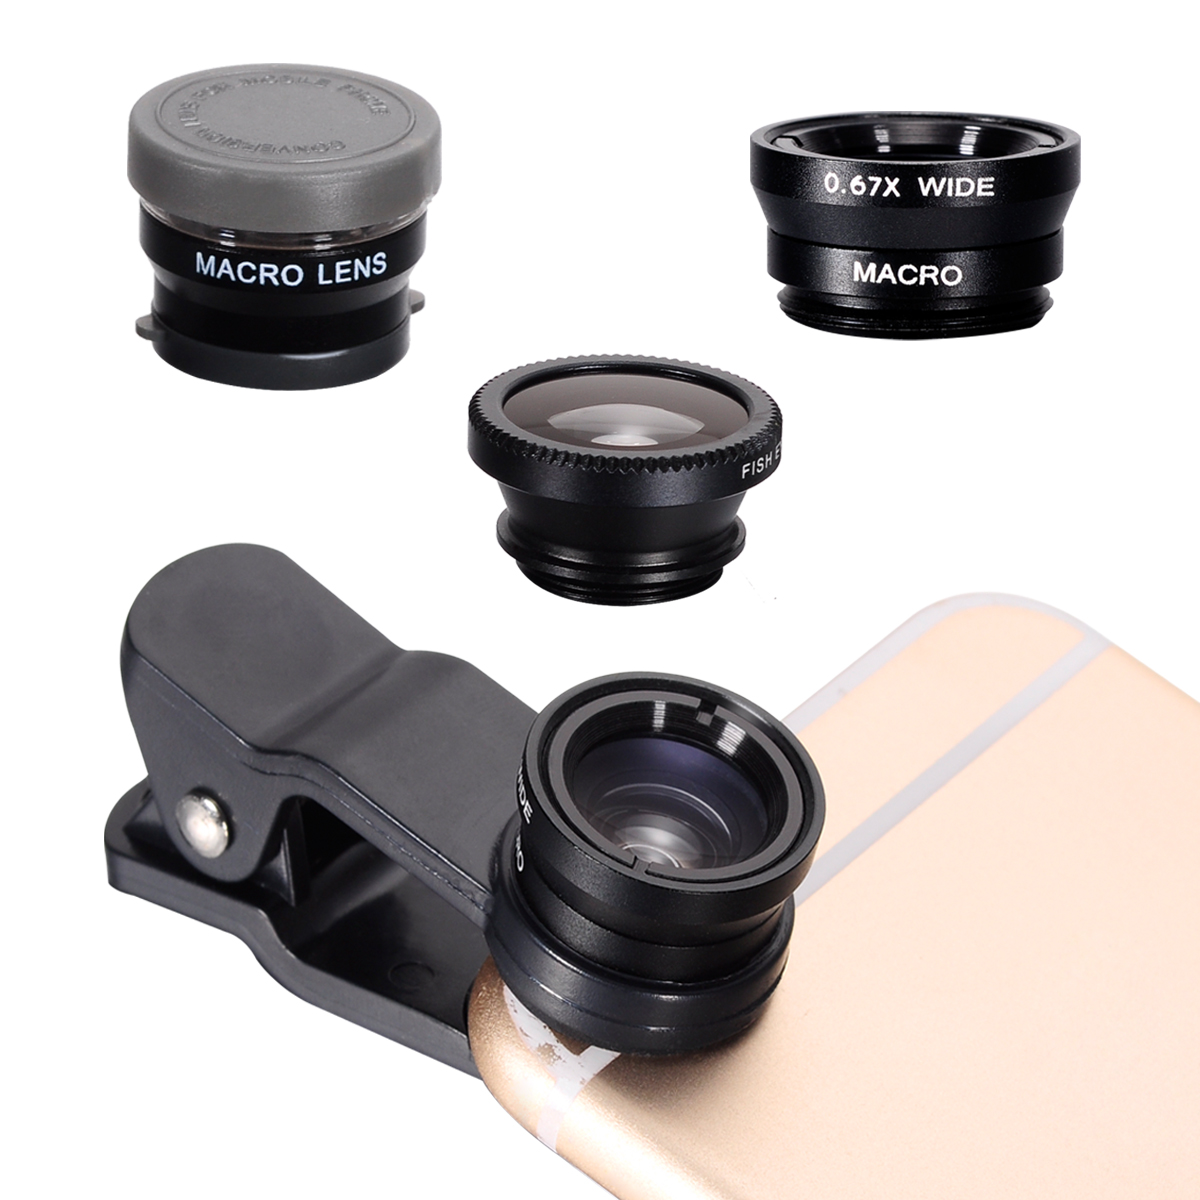 Phone lens (6x HD Macro lens+ Fisheye +Wide Angle) For LG G3 G2 Nexus 4 5 DC576(China (Mainland))